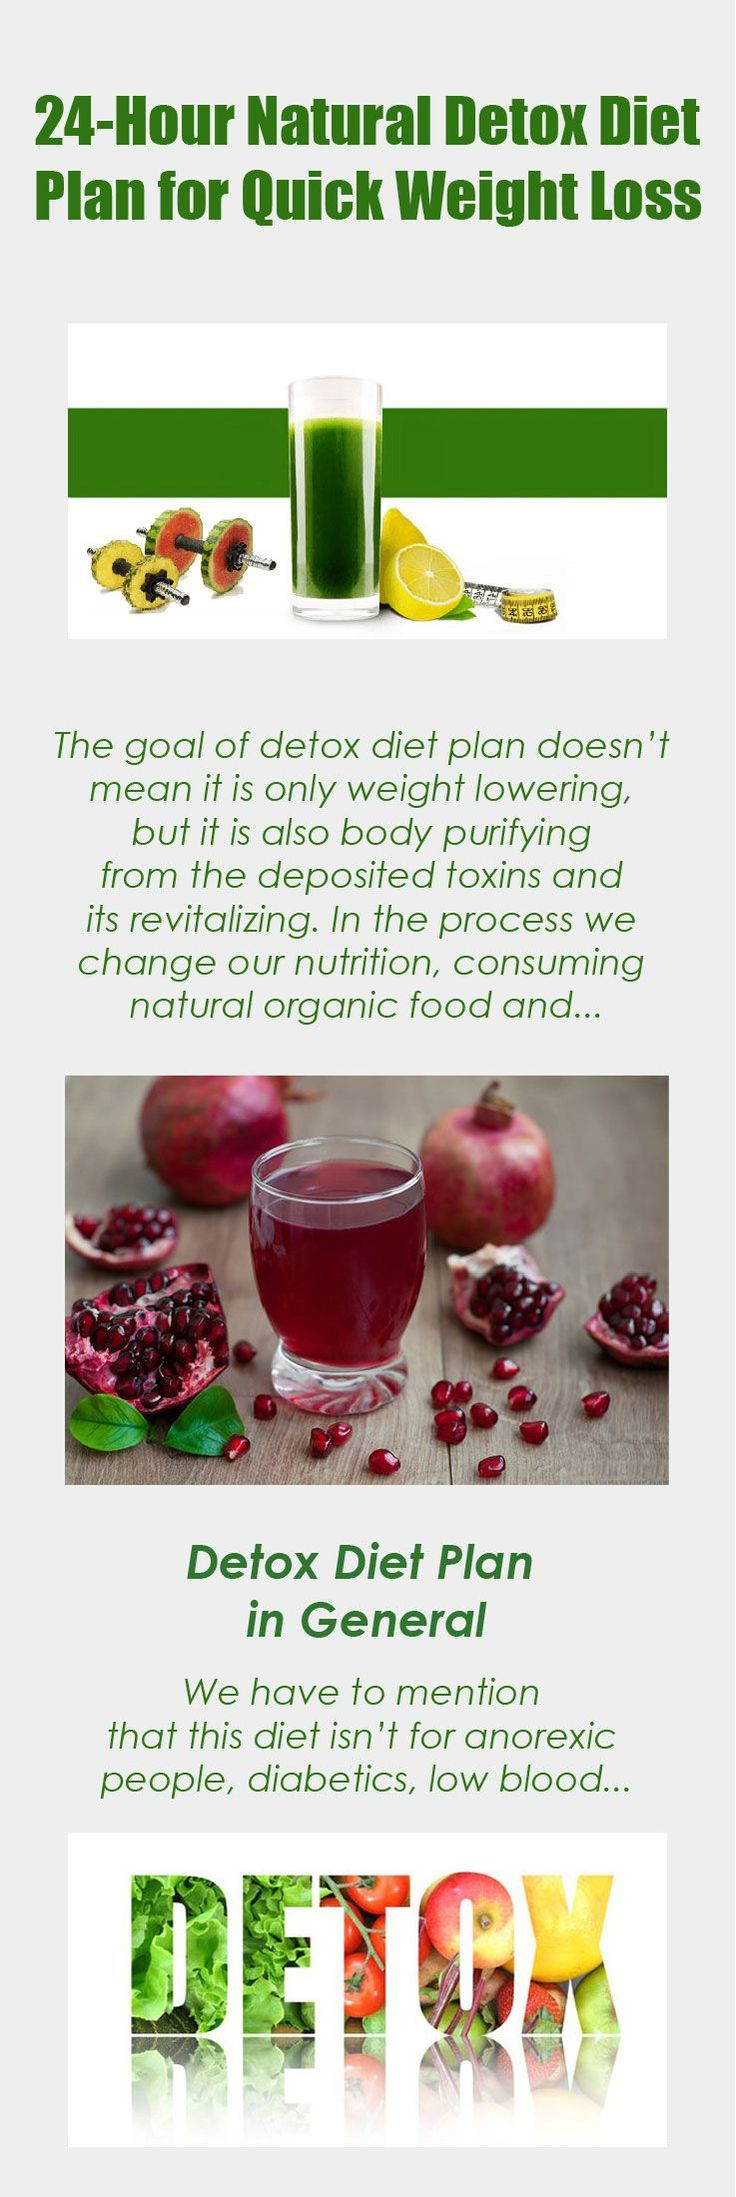 24 Hour Natural Detox Diet Plan For Quick Weight Loss